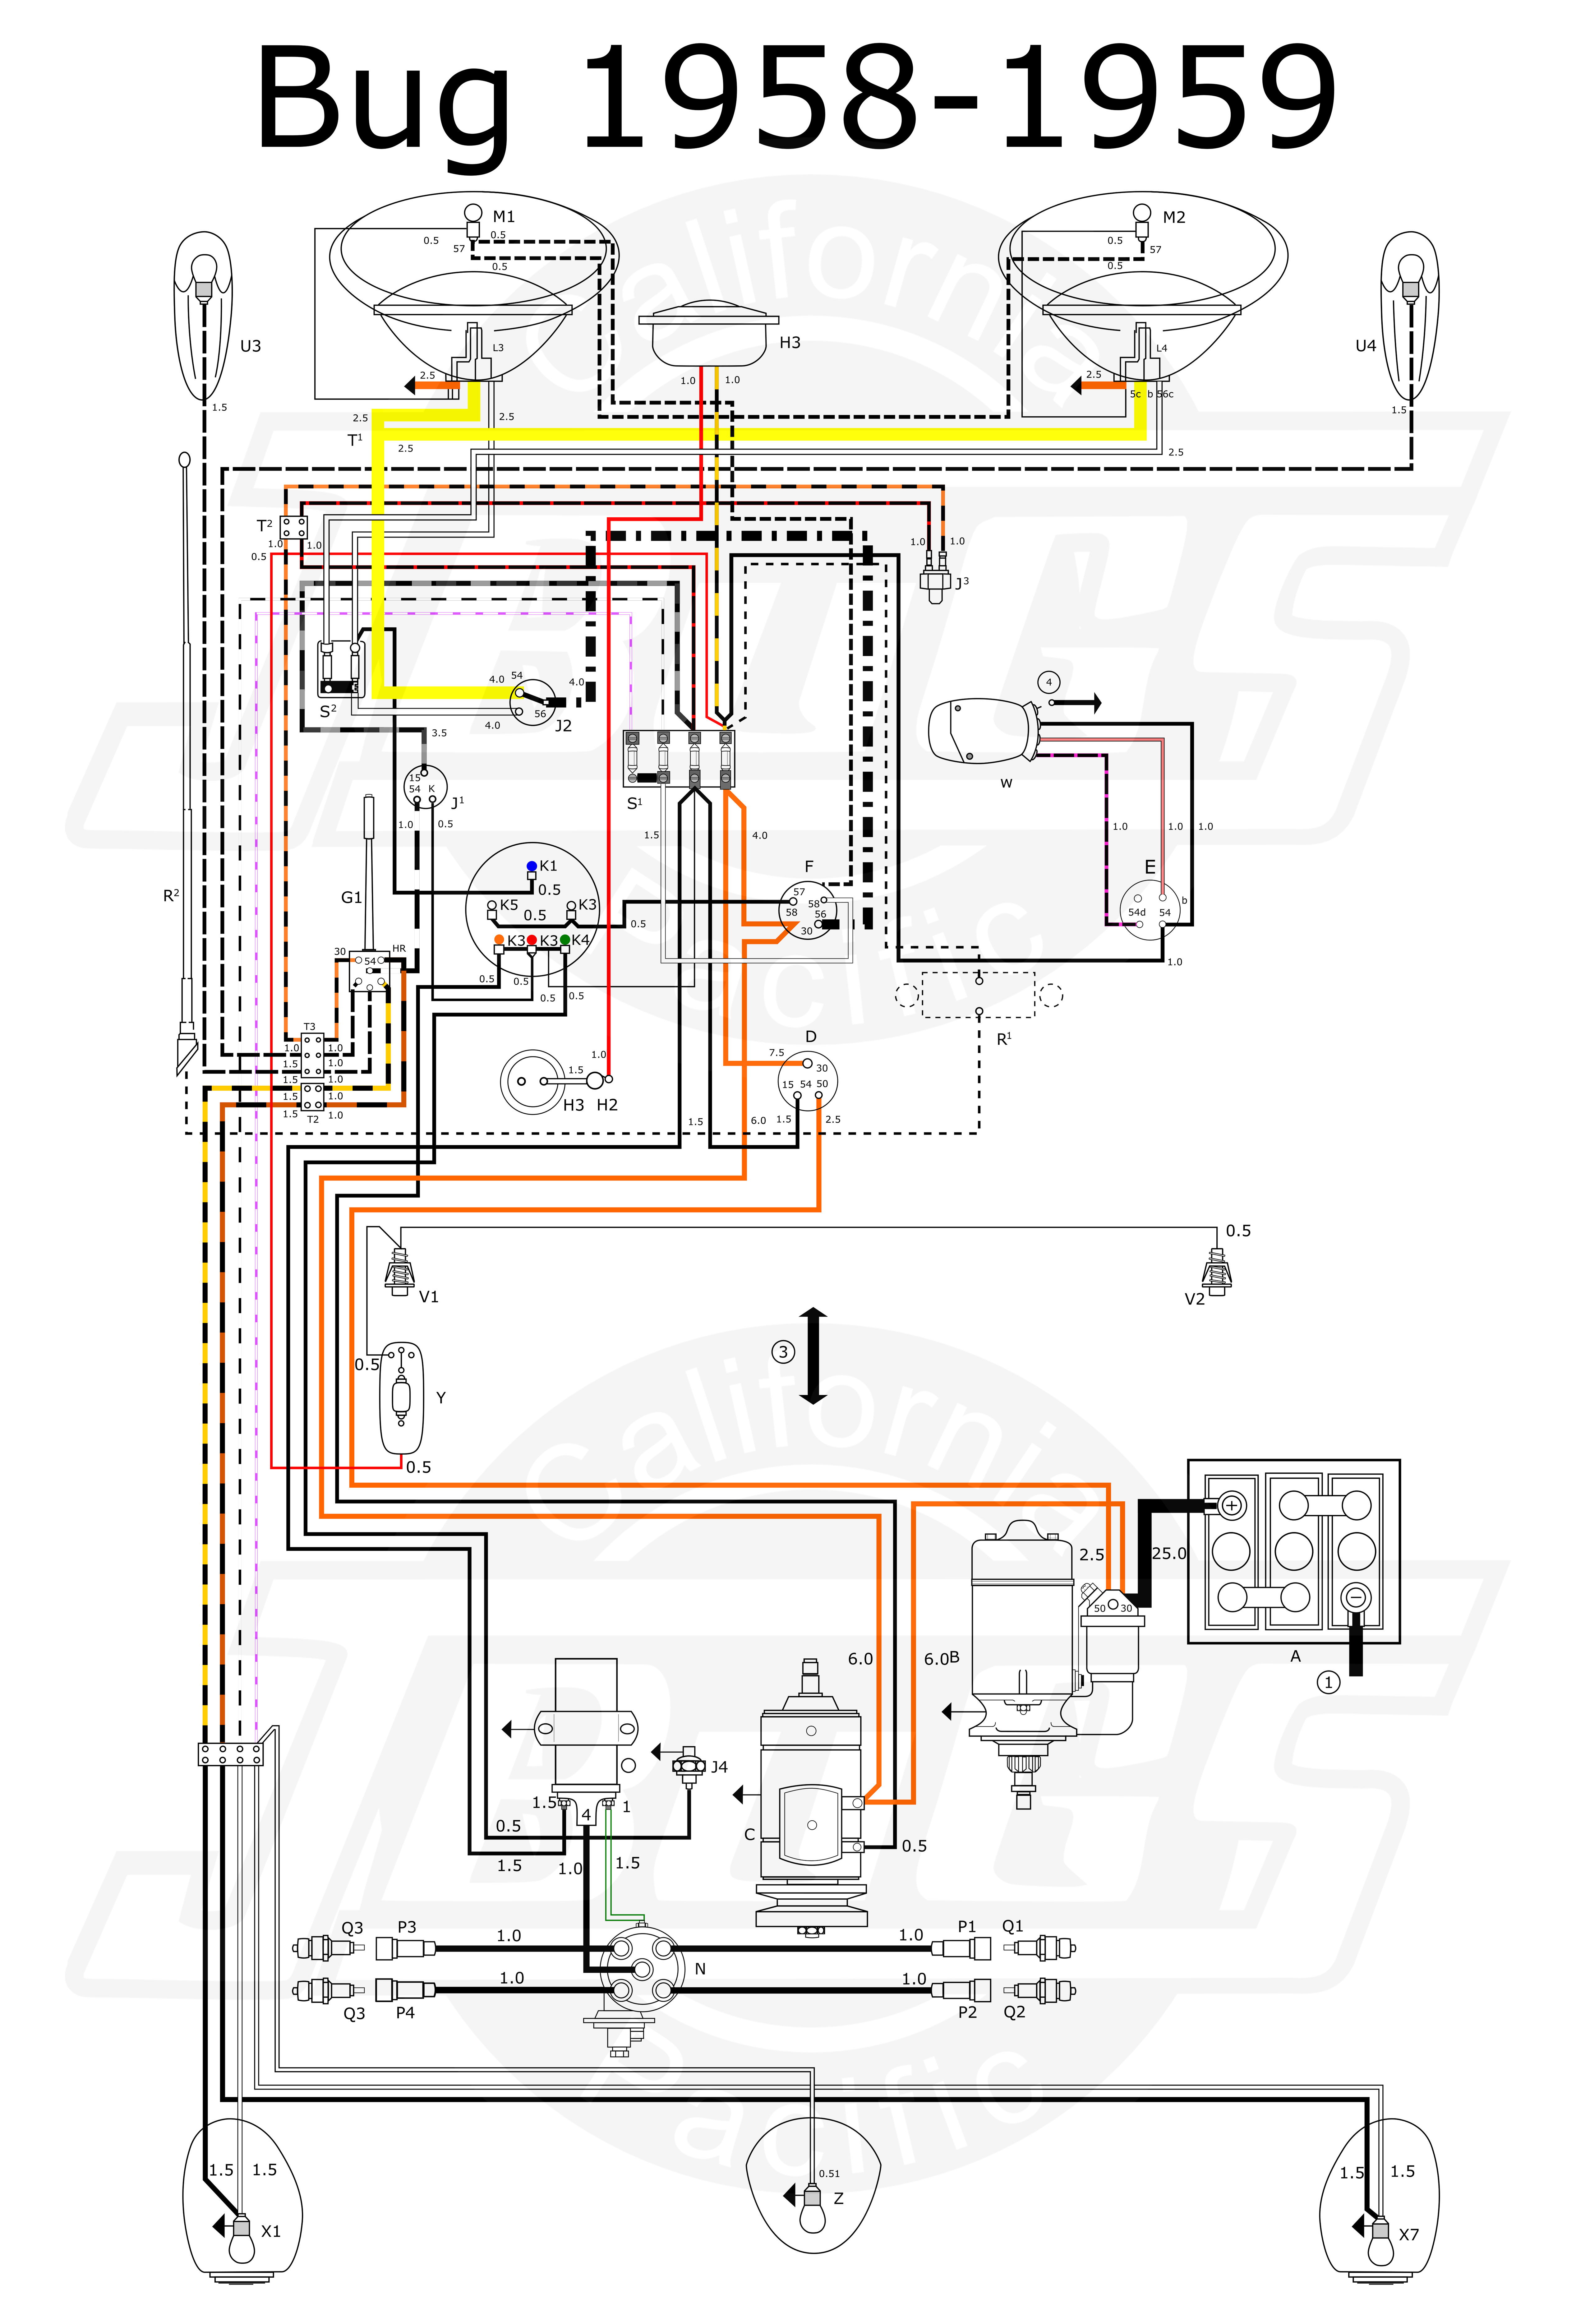 VW Bug 1958 59 Wiring Diagram?resize\\d665%2C980 vw beetle wiring diagram efcaviation com 1974 volkswagen super beetle wiring harness at bayanpartner.co